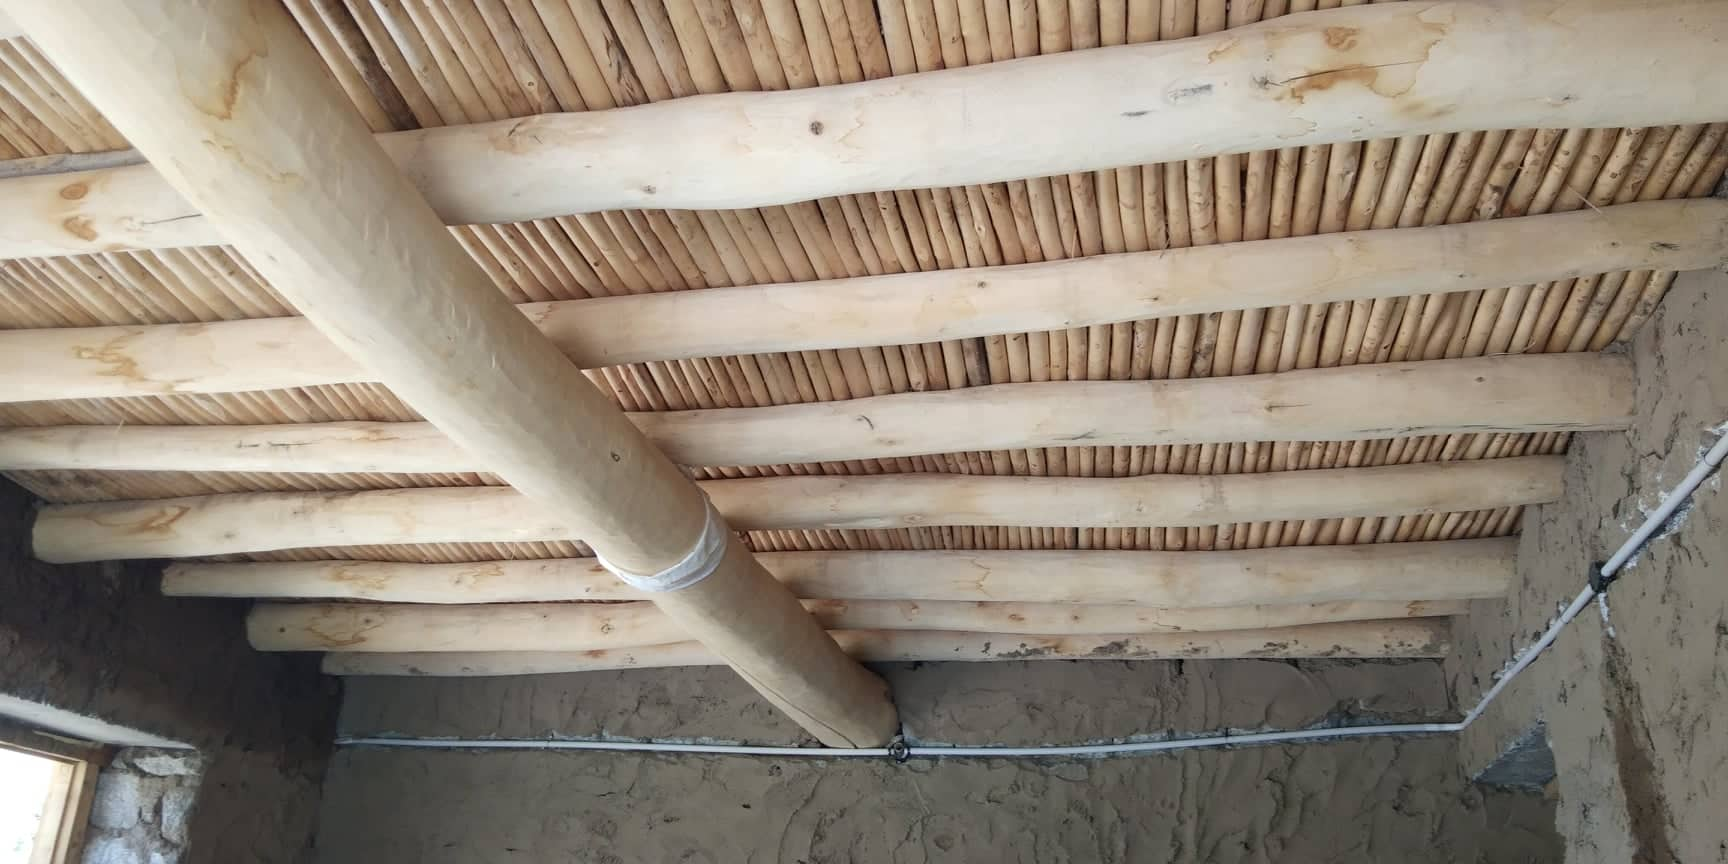 Traditional roof construction in Ladakh made with poplar wood. (Source: Tsetan Dolkar)